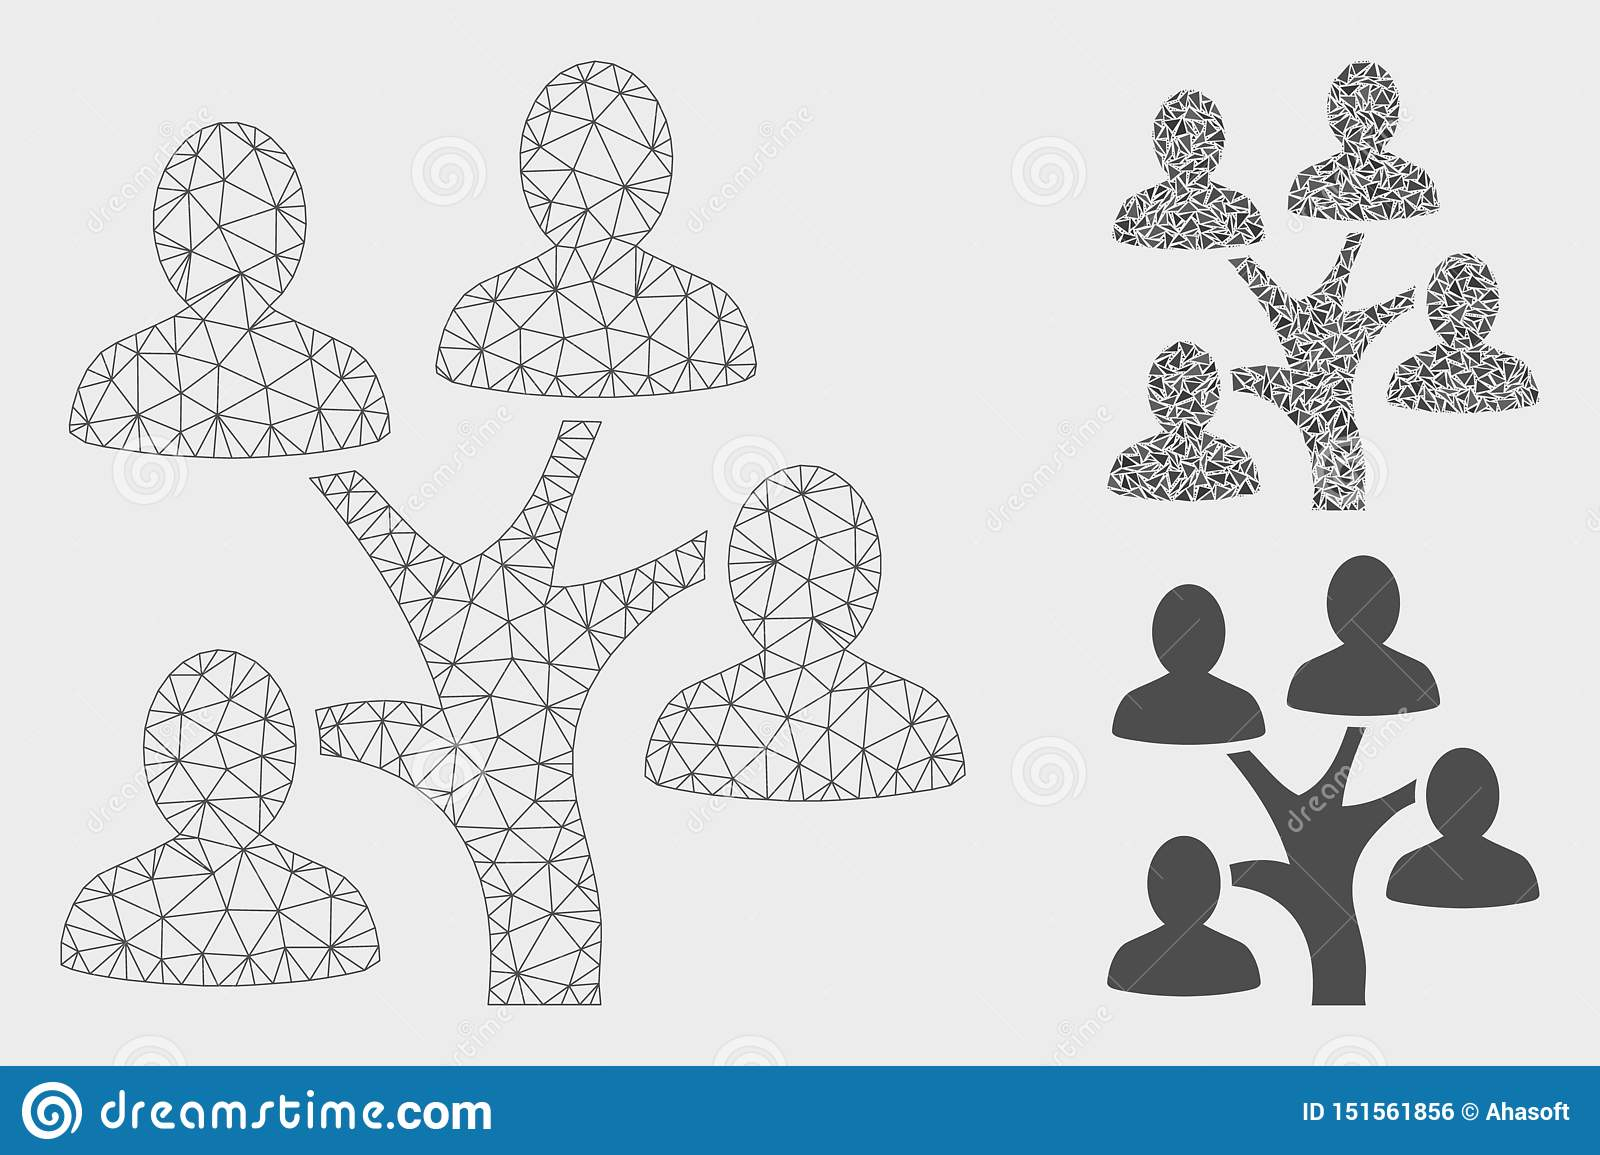 Genealogy Tree Vector Mesh Carcass Model and Triangle Mosaic Icon